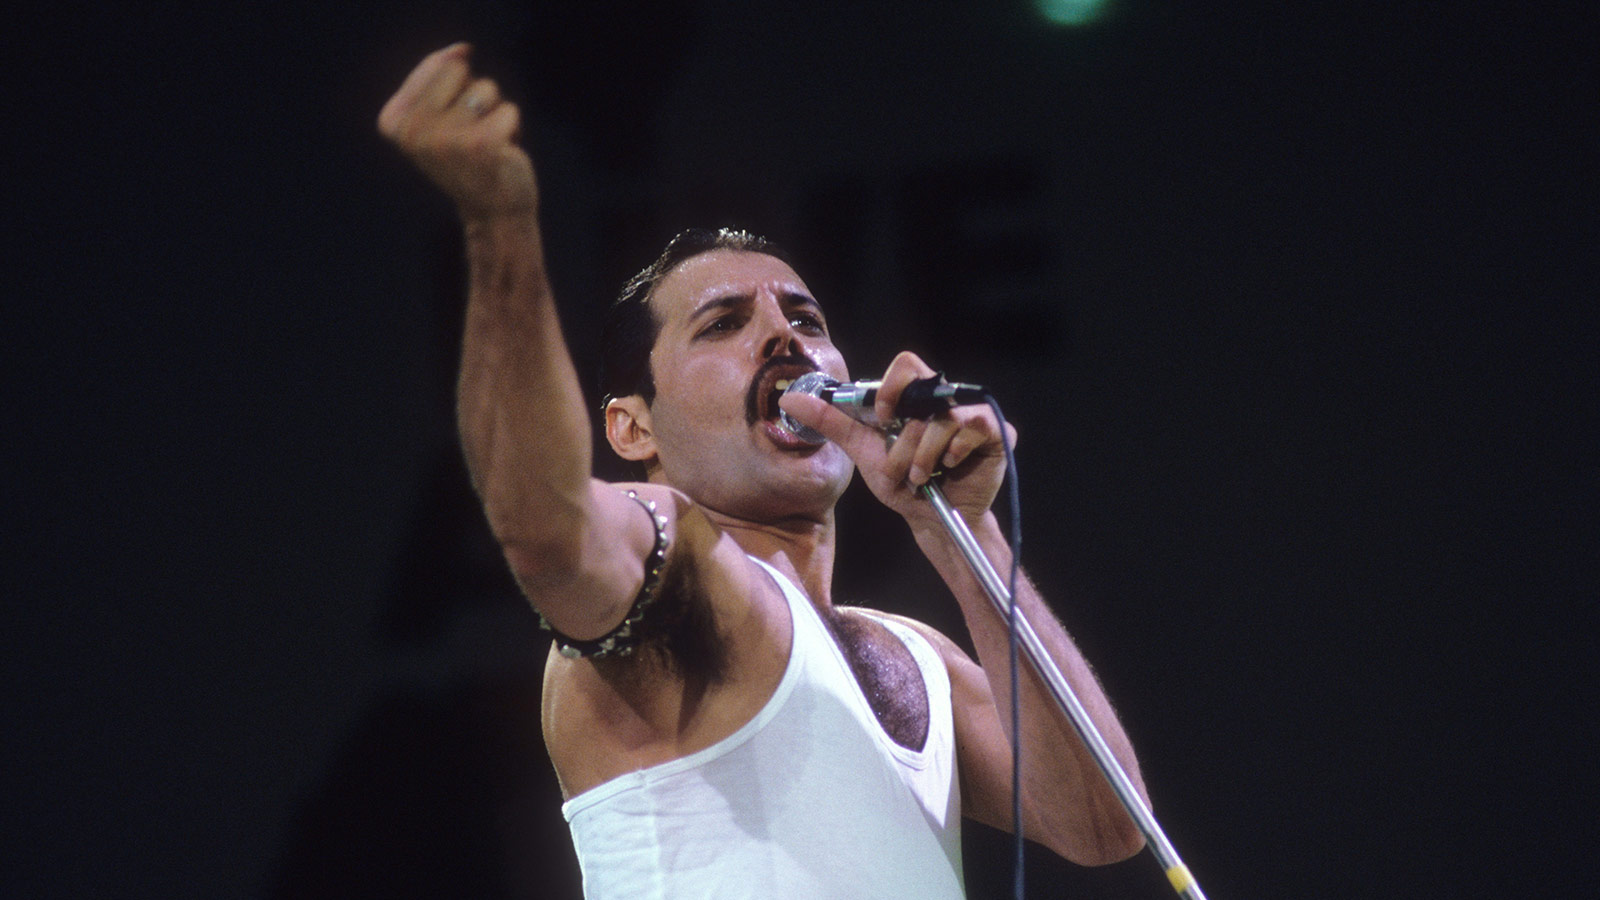 33 years later, Queen's Live Aid performance is still pure magic